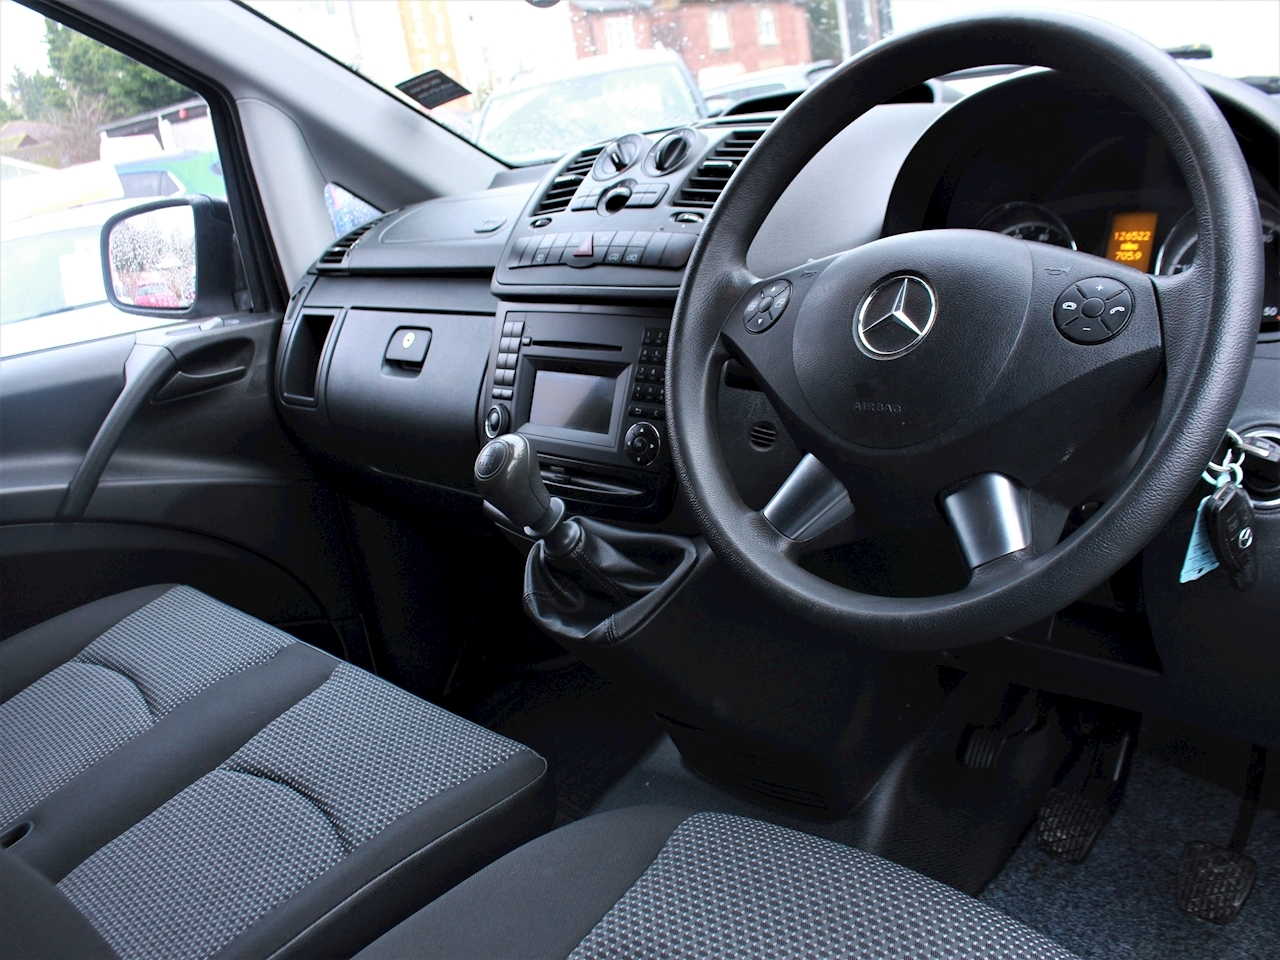 Mercedes-Benz Vito 110 Cdi Blueefficiency - Large 15